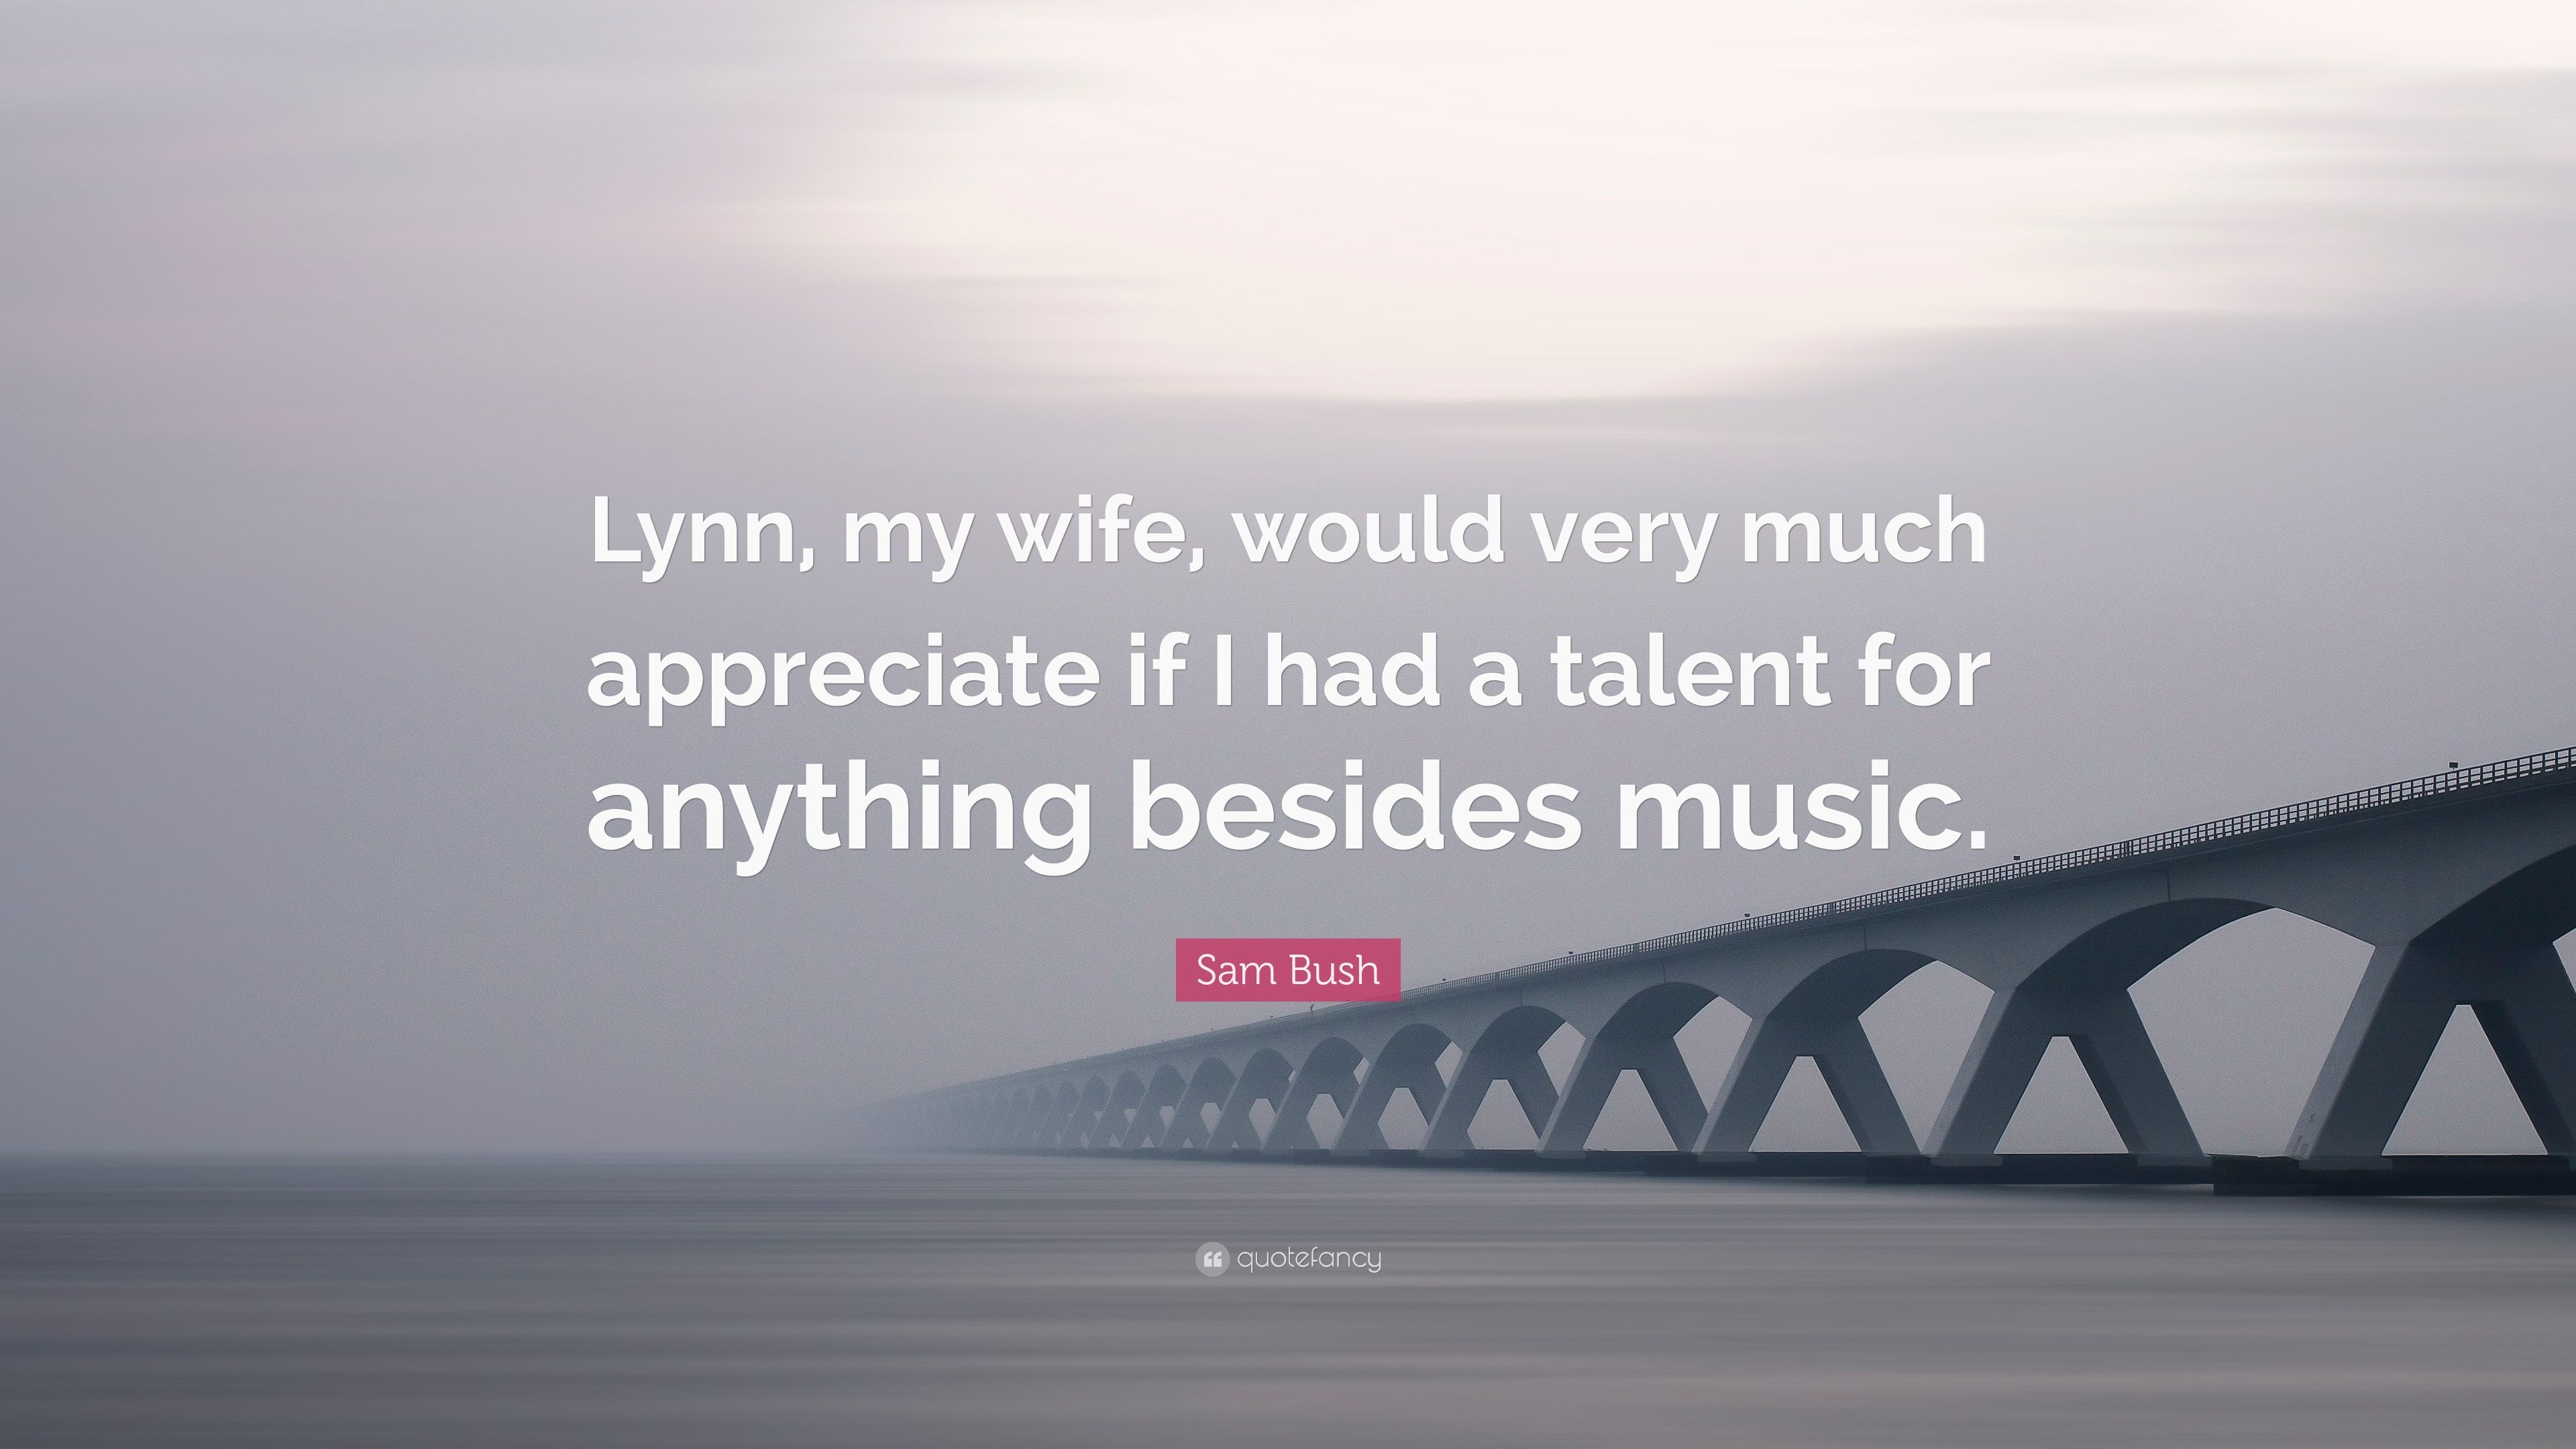 sam bush quote lynn my wife would very much appreciate if i had